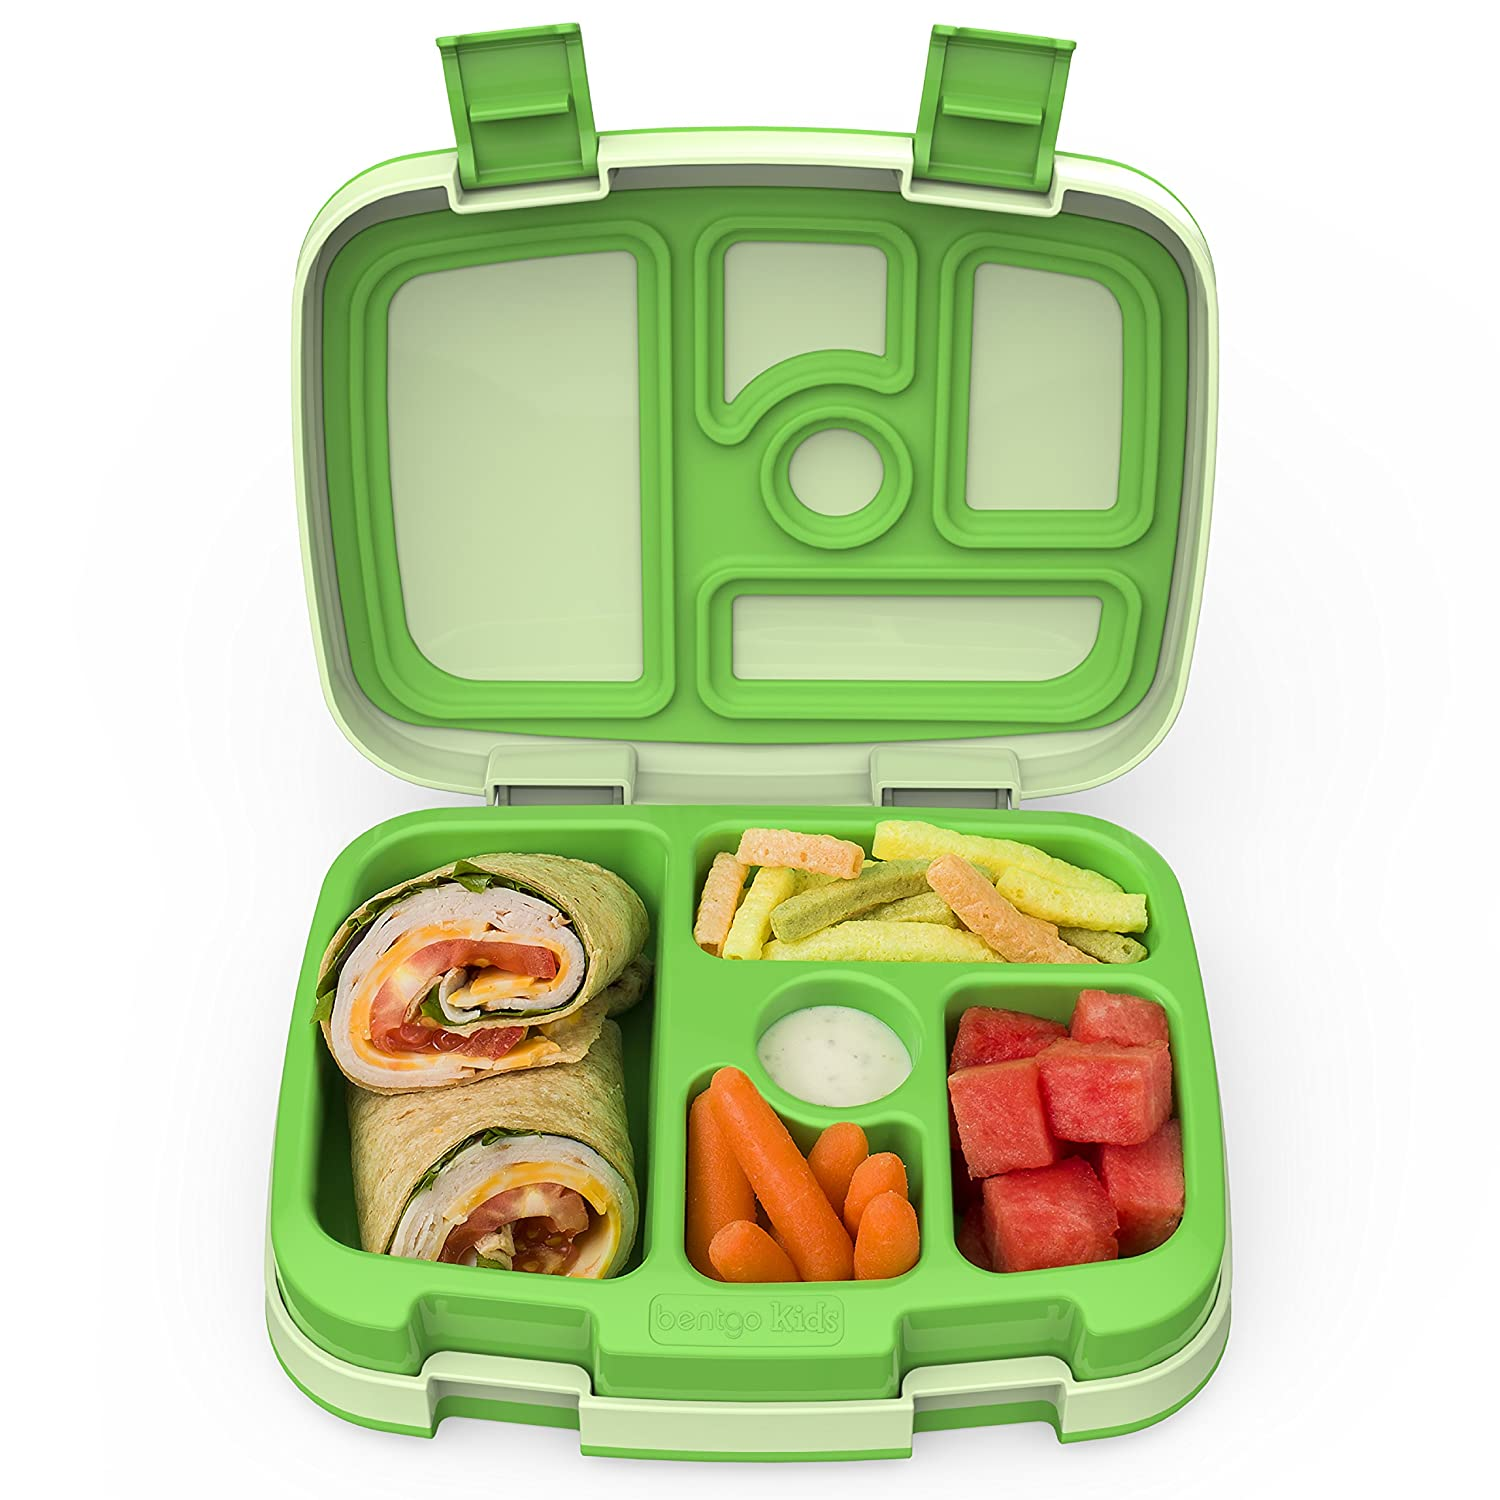 Top 9 Best Bento Box for Toddlers Reviews in 2019 3